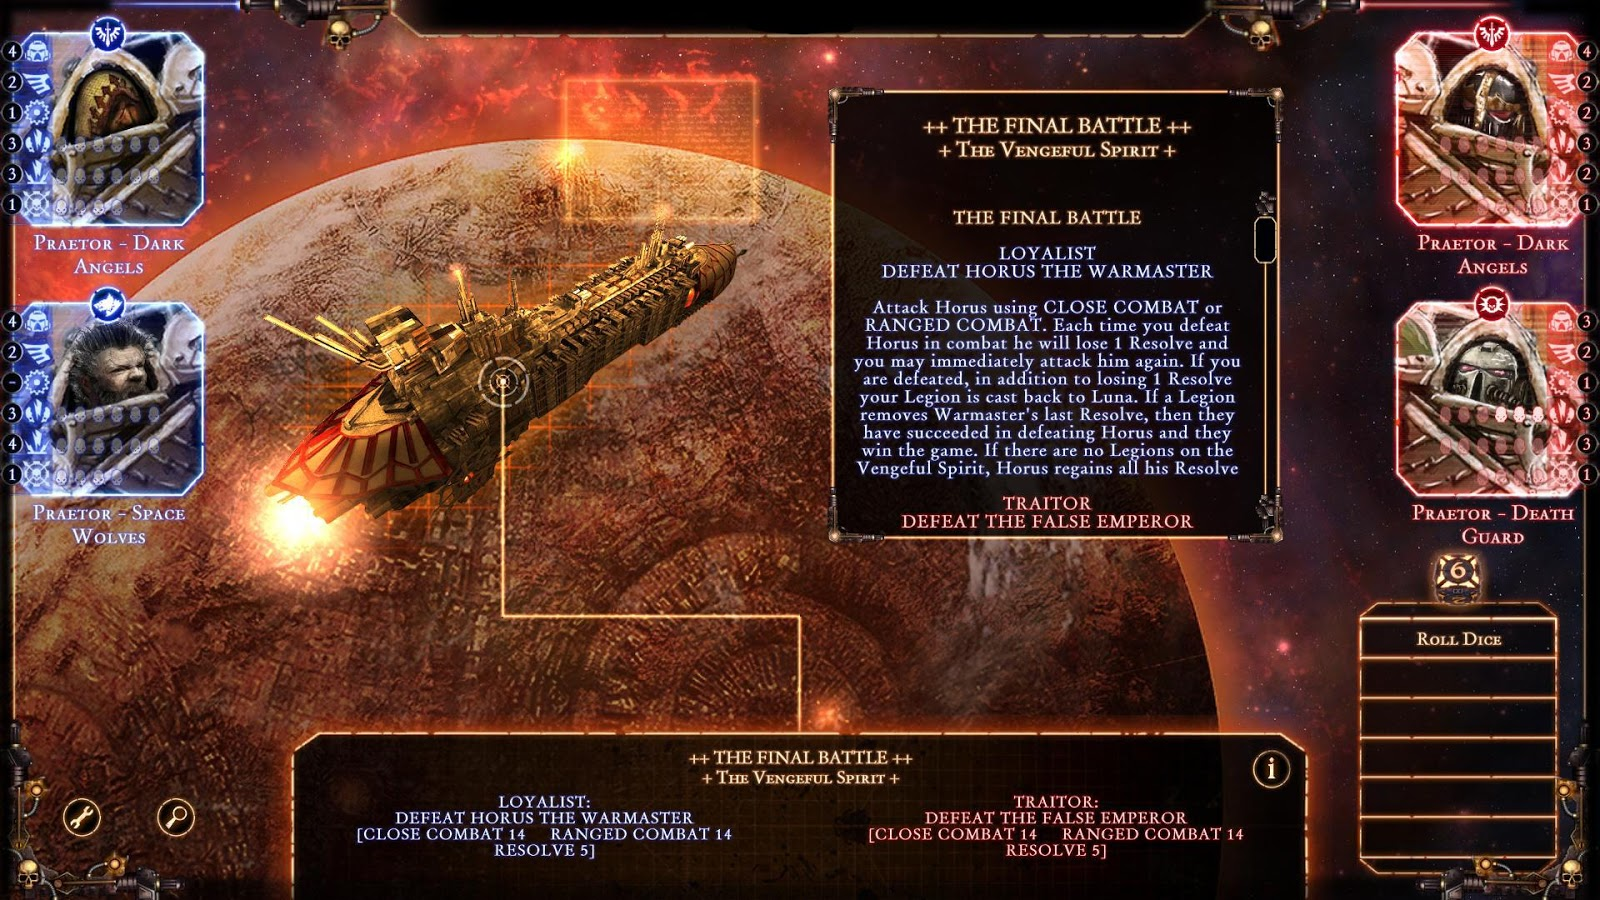 Talisman: The Horus Heresy Screenshot 7